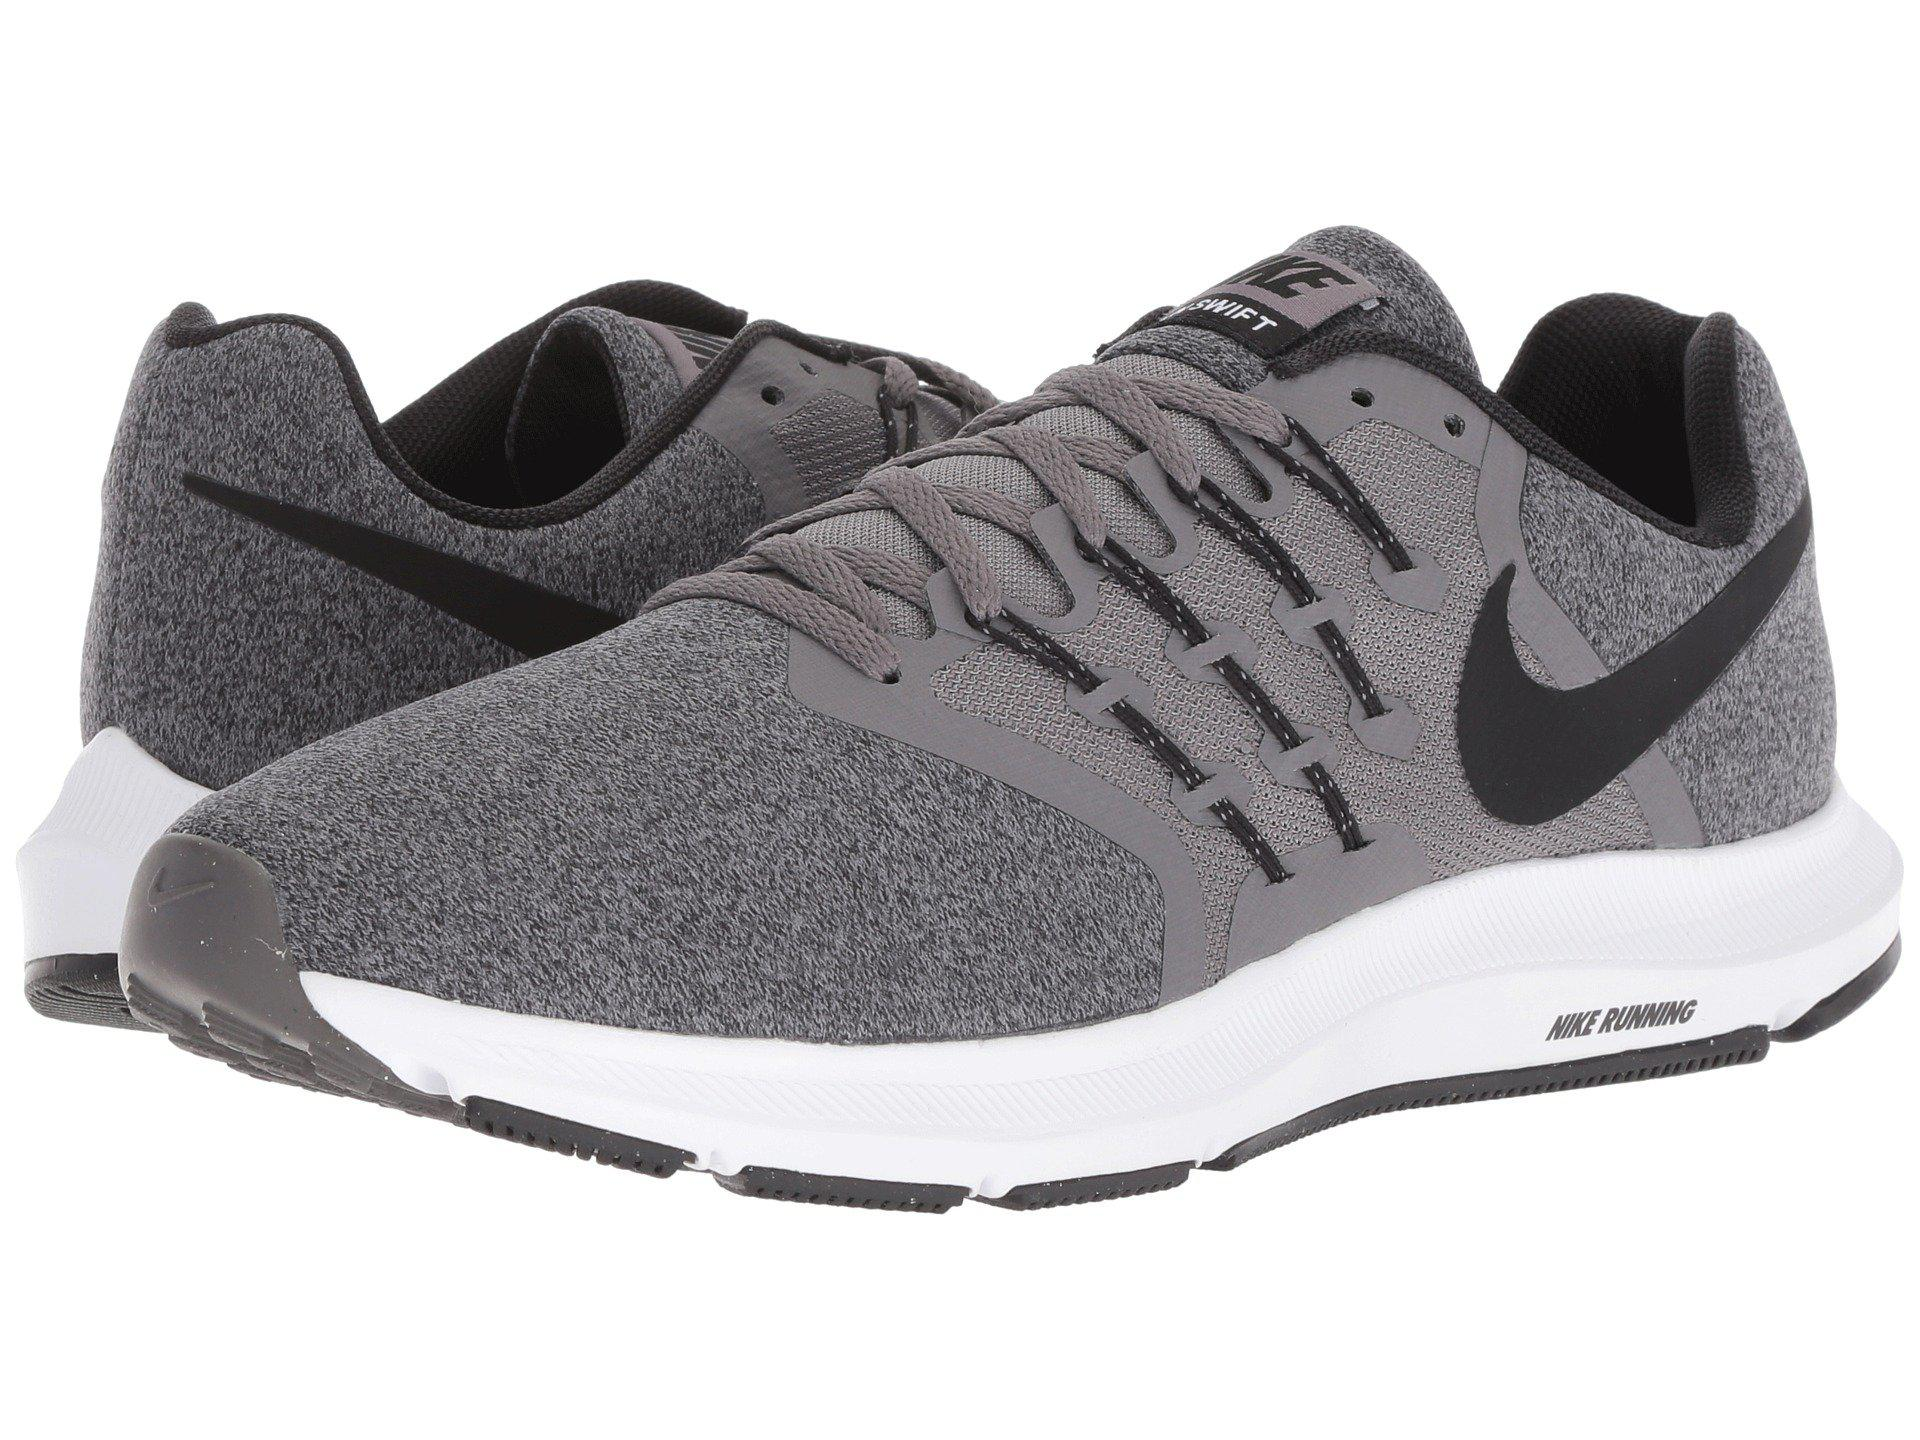 7411b01195e6 Lyst - Nike Swift Running Shoes for Men - Save 7%